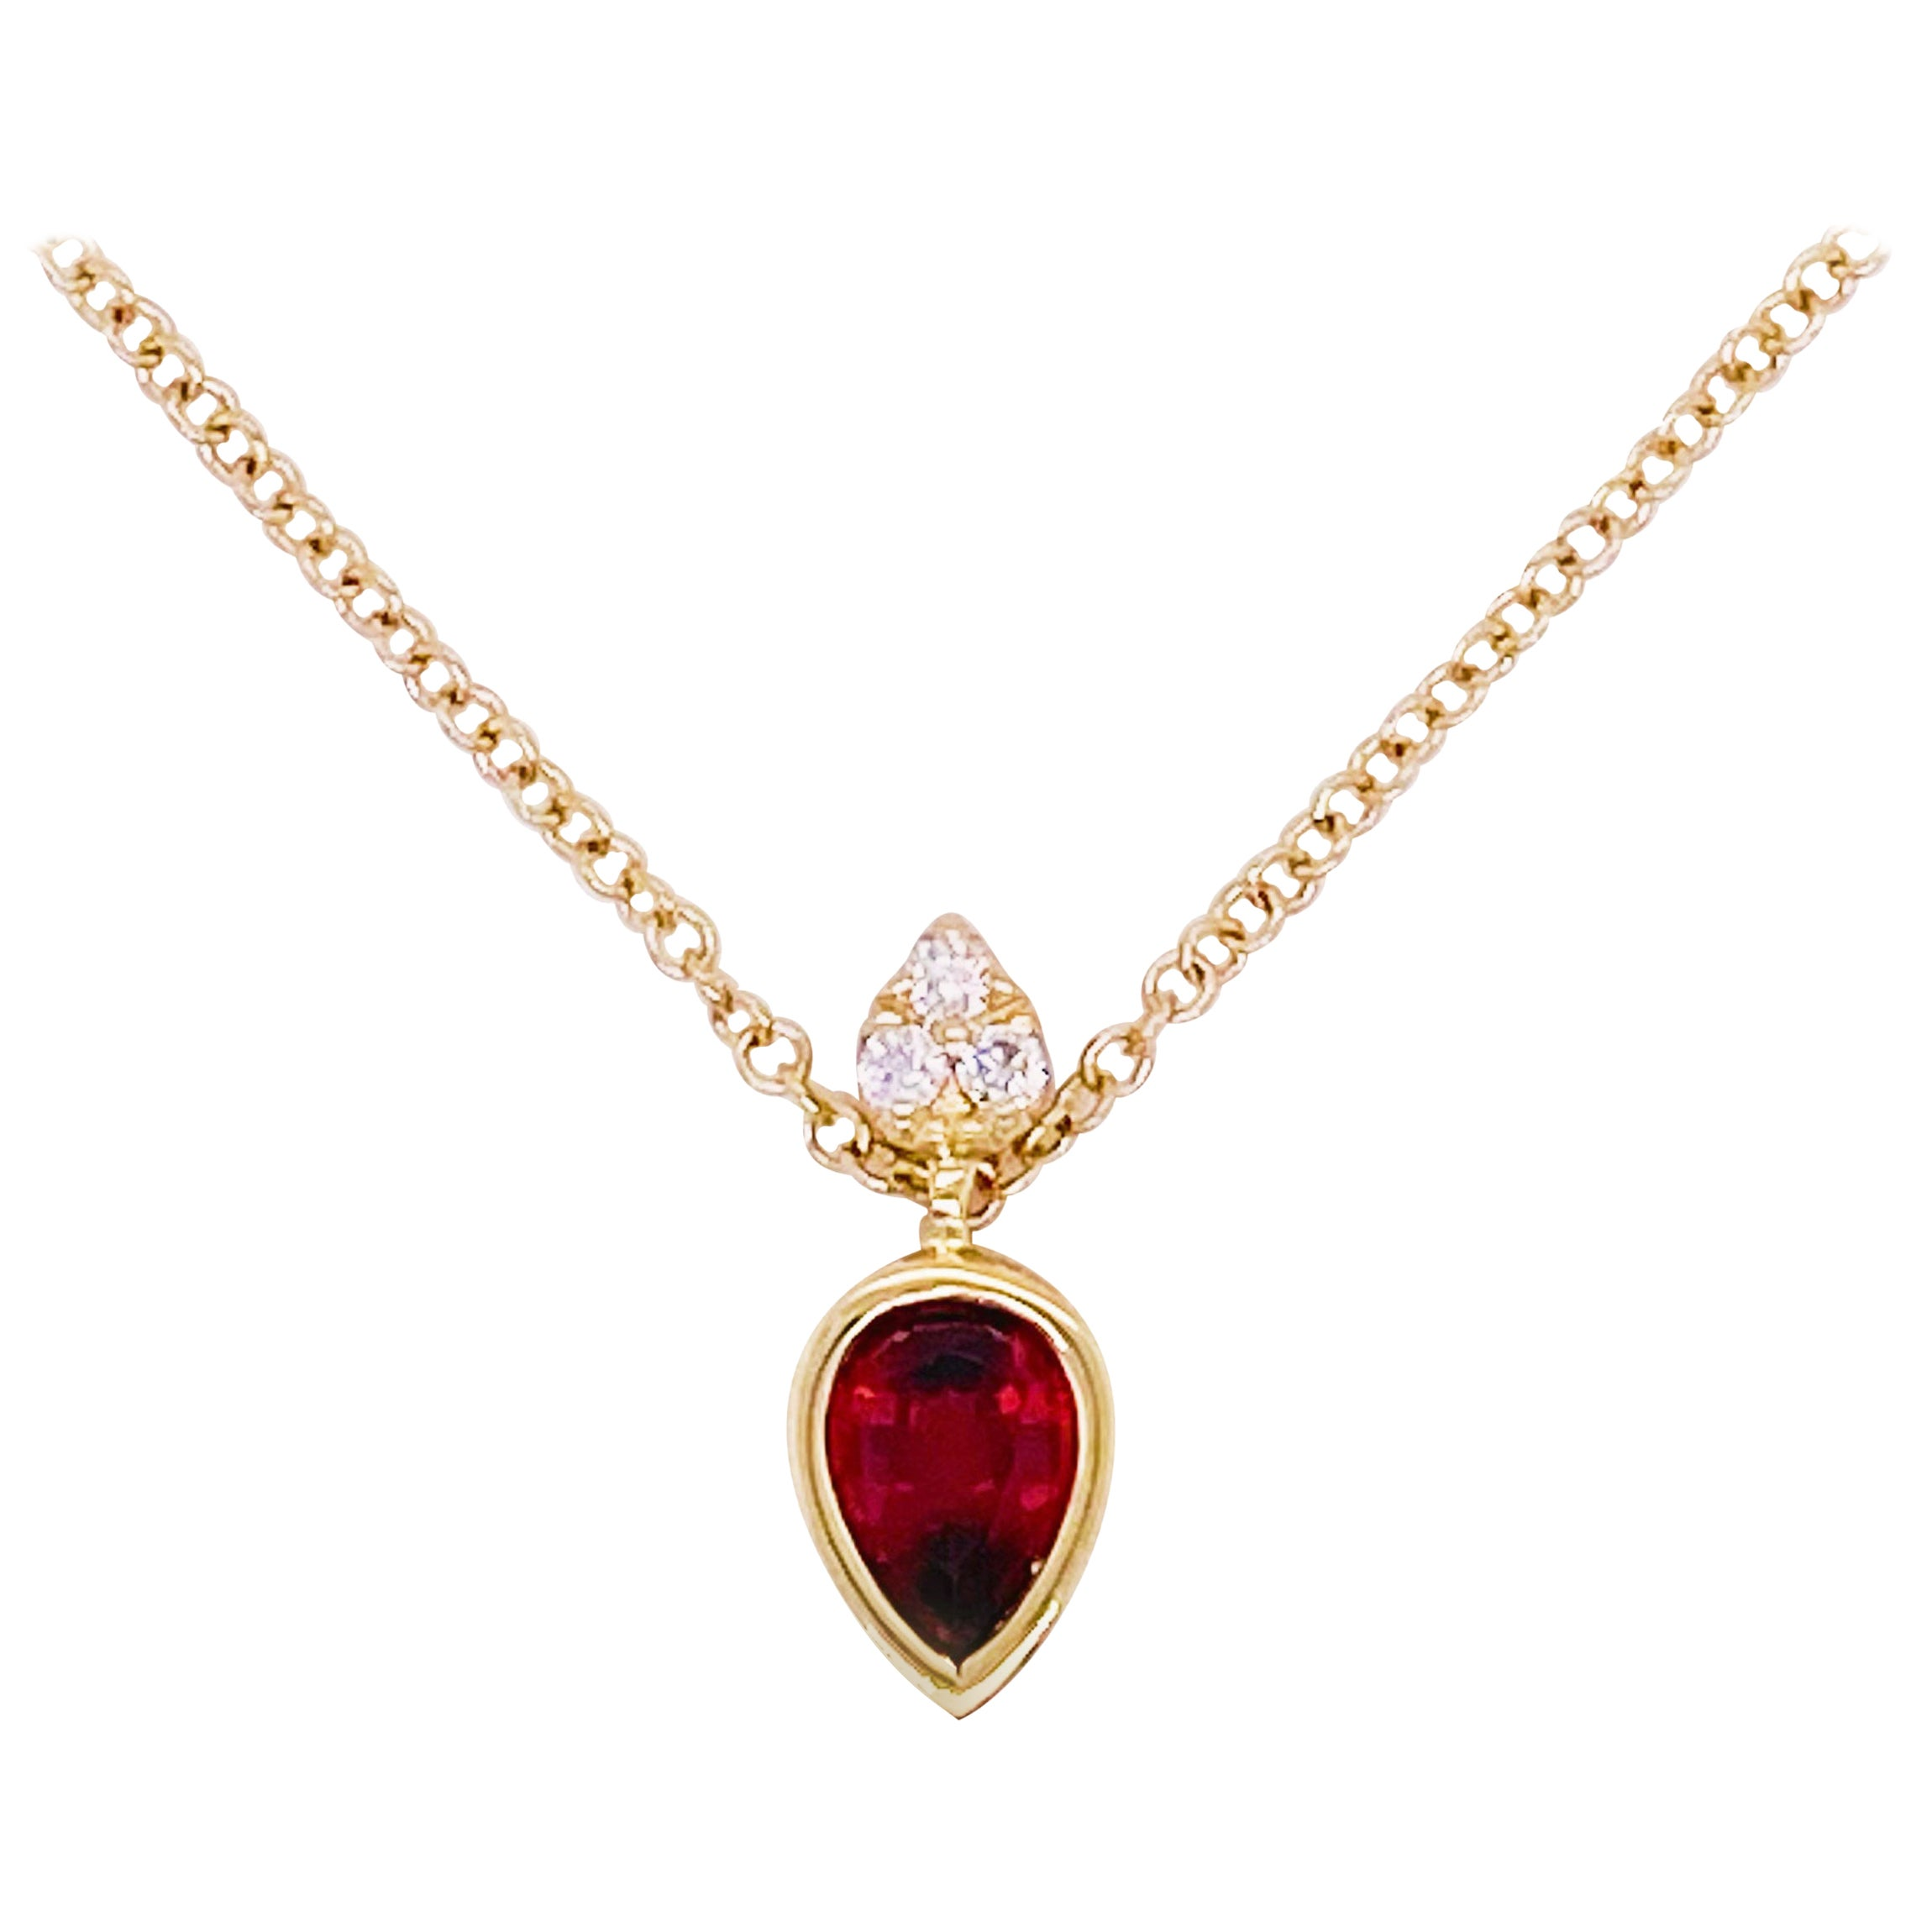 Garnet Diamond Necklace, 14 Karat Gold Pear Drop Garnet Pendant Designer Pendant